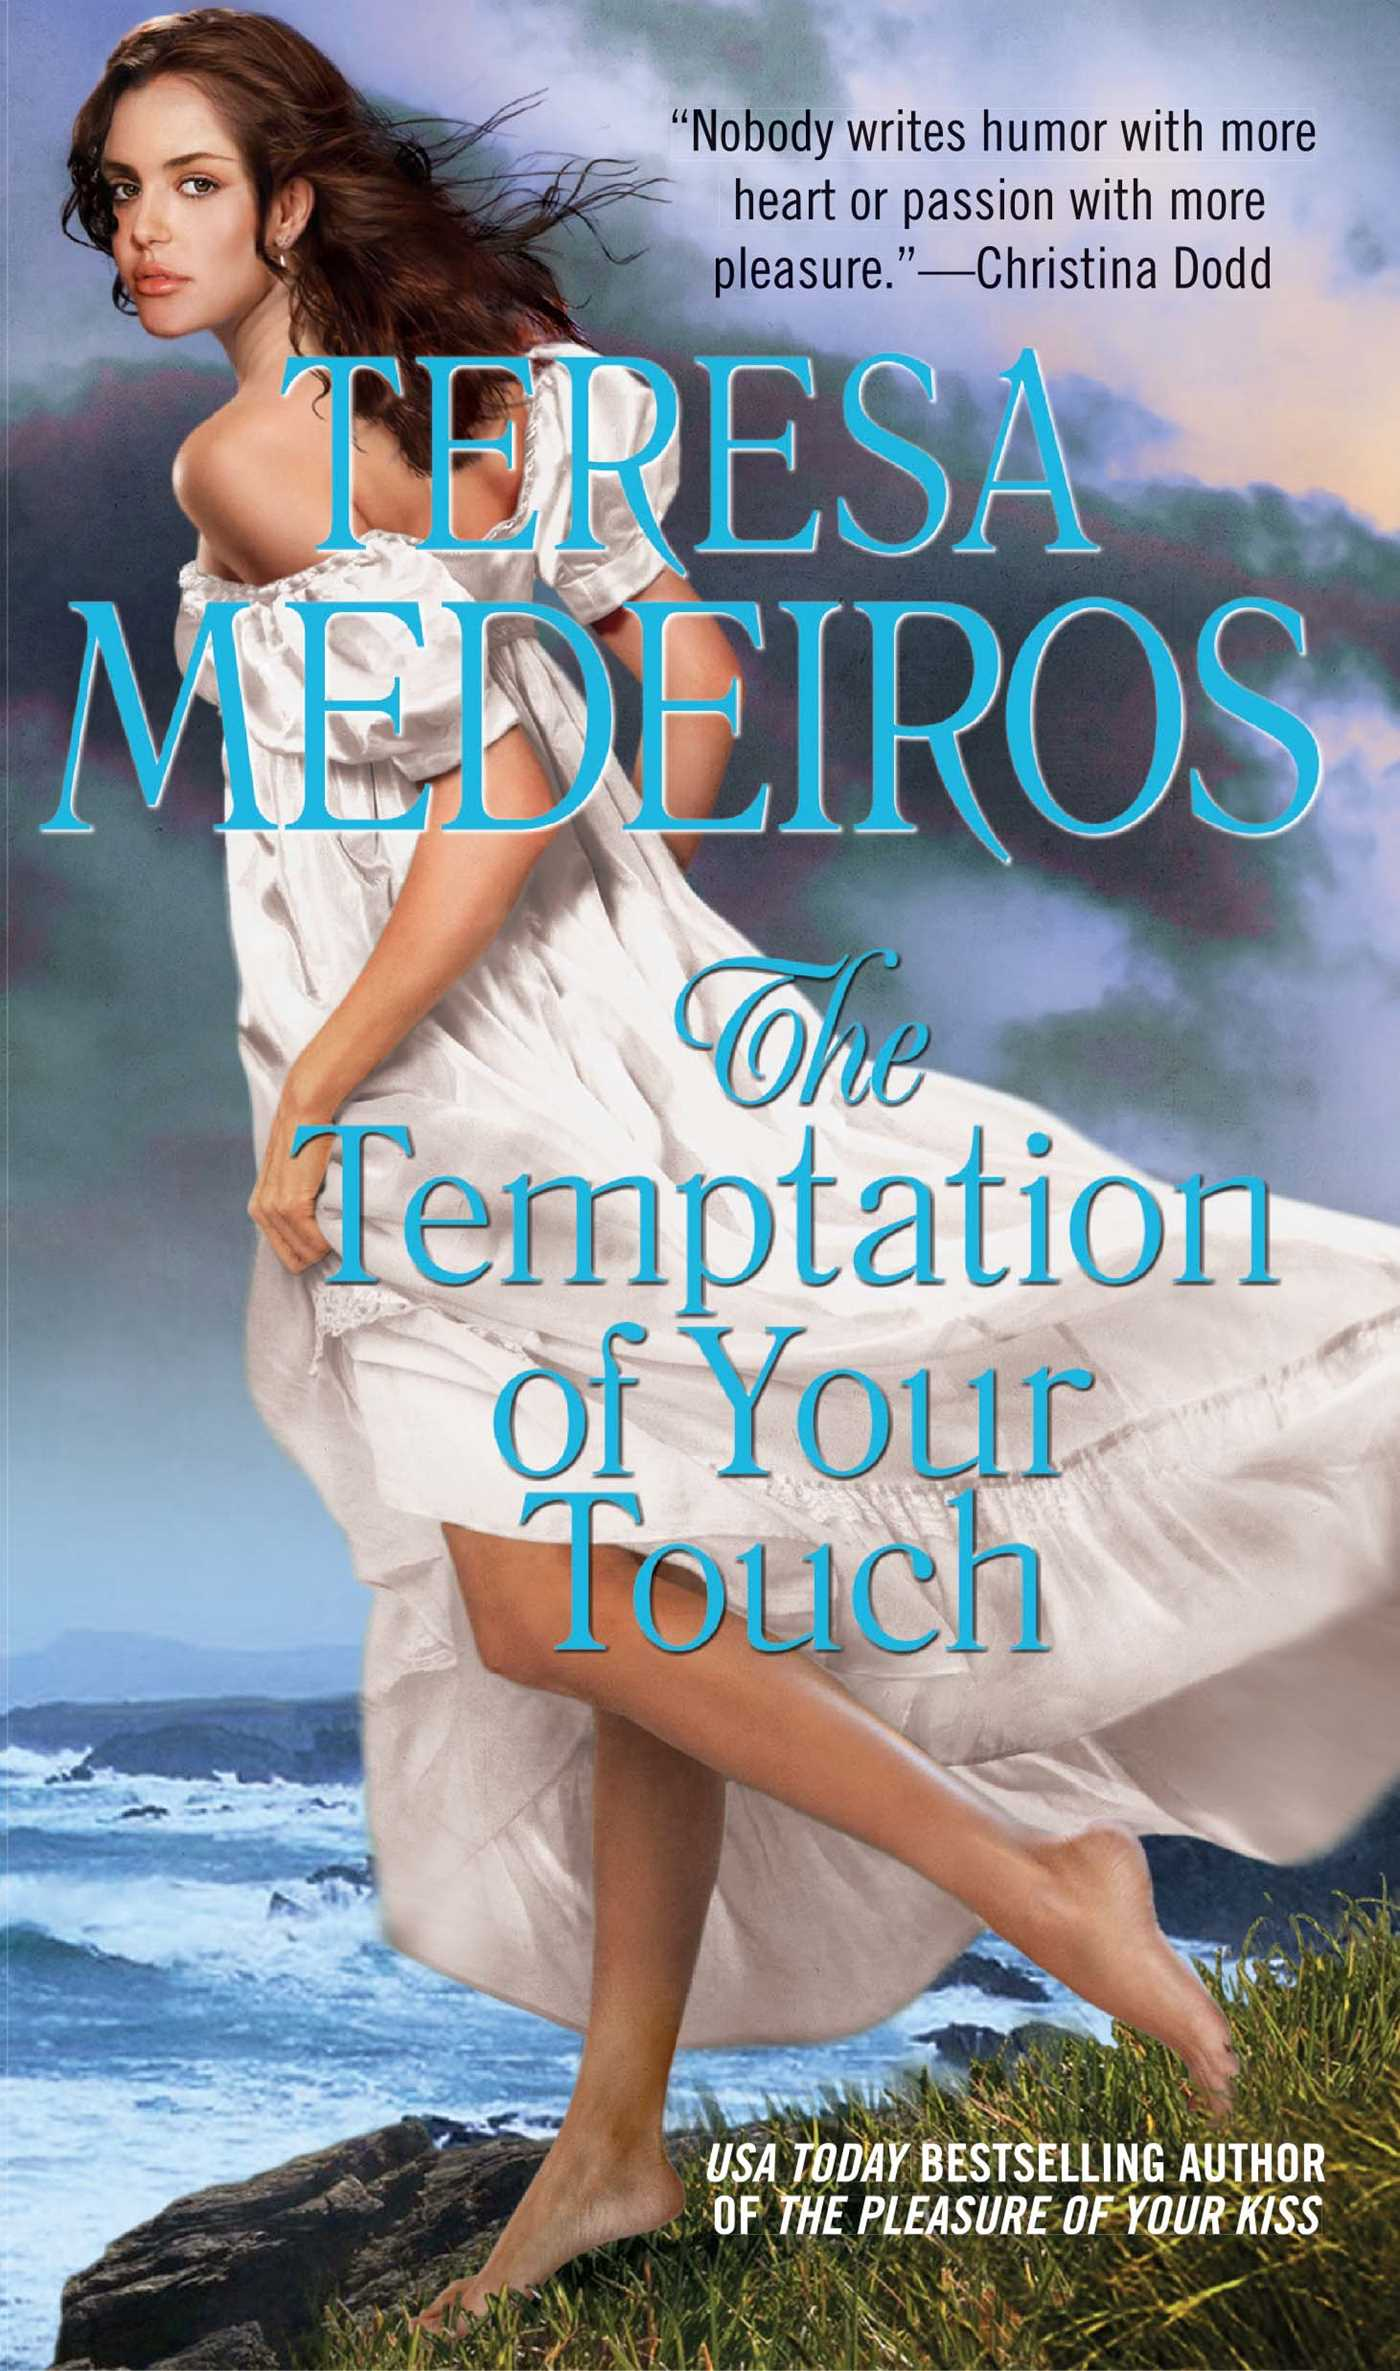 The temptation of your touch 9781439170748 hr